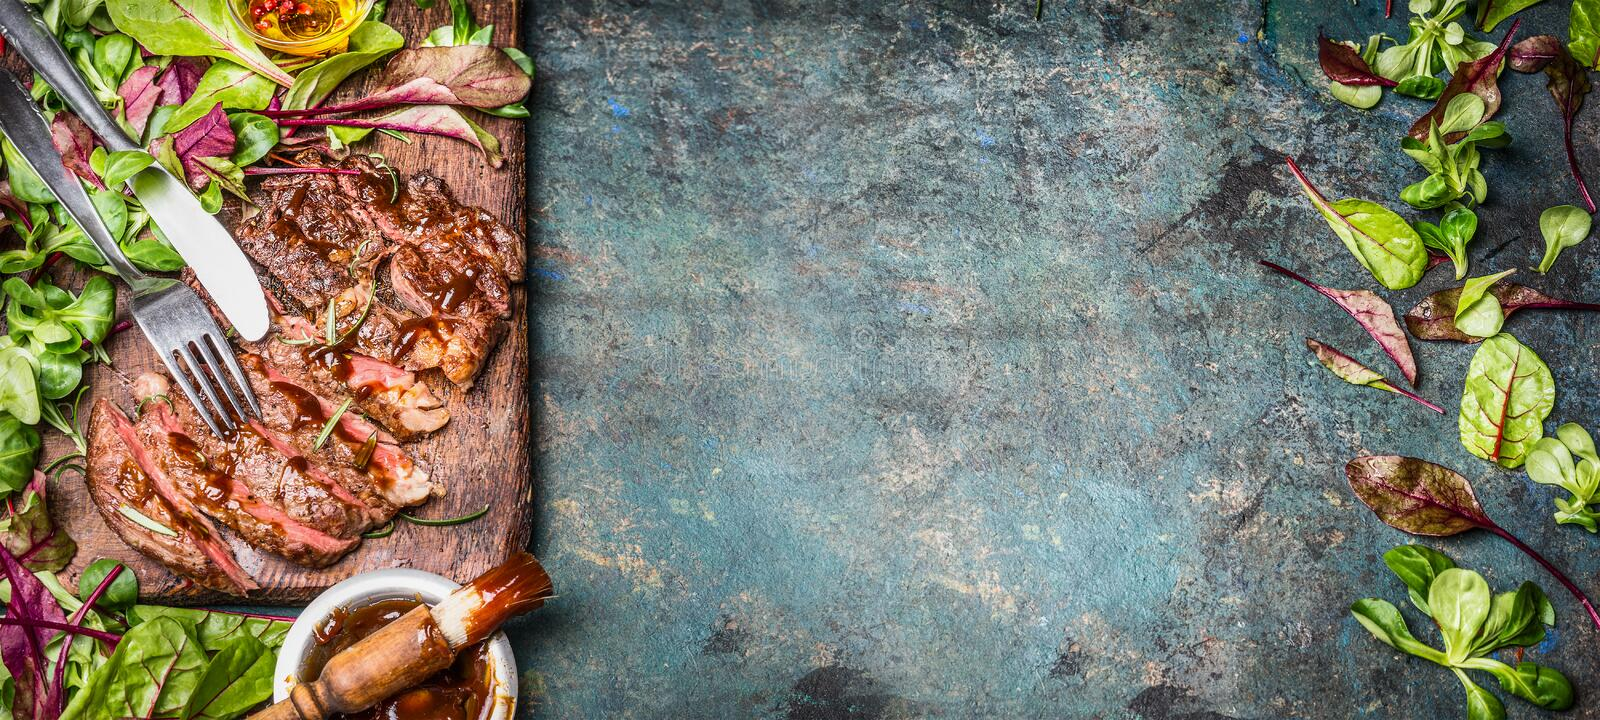 Perfectly fried or grilled steak. Sliced Beef seak , served with green salad leaves and Barbecue sauce on wooden cutting board royalty free stock photography